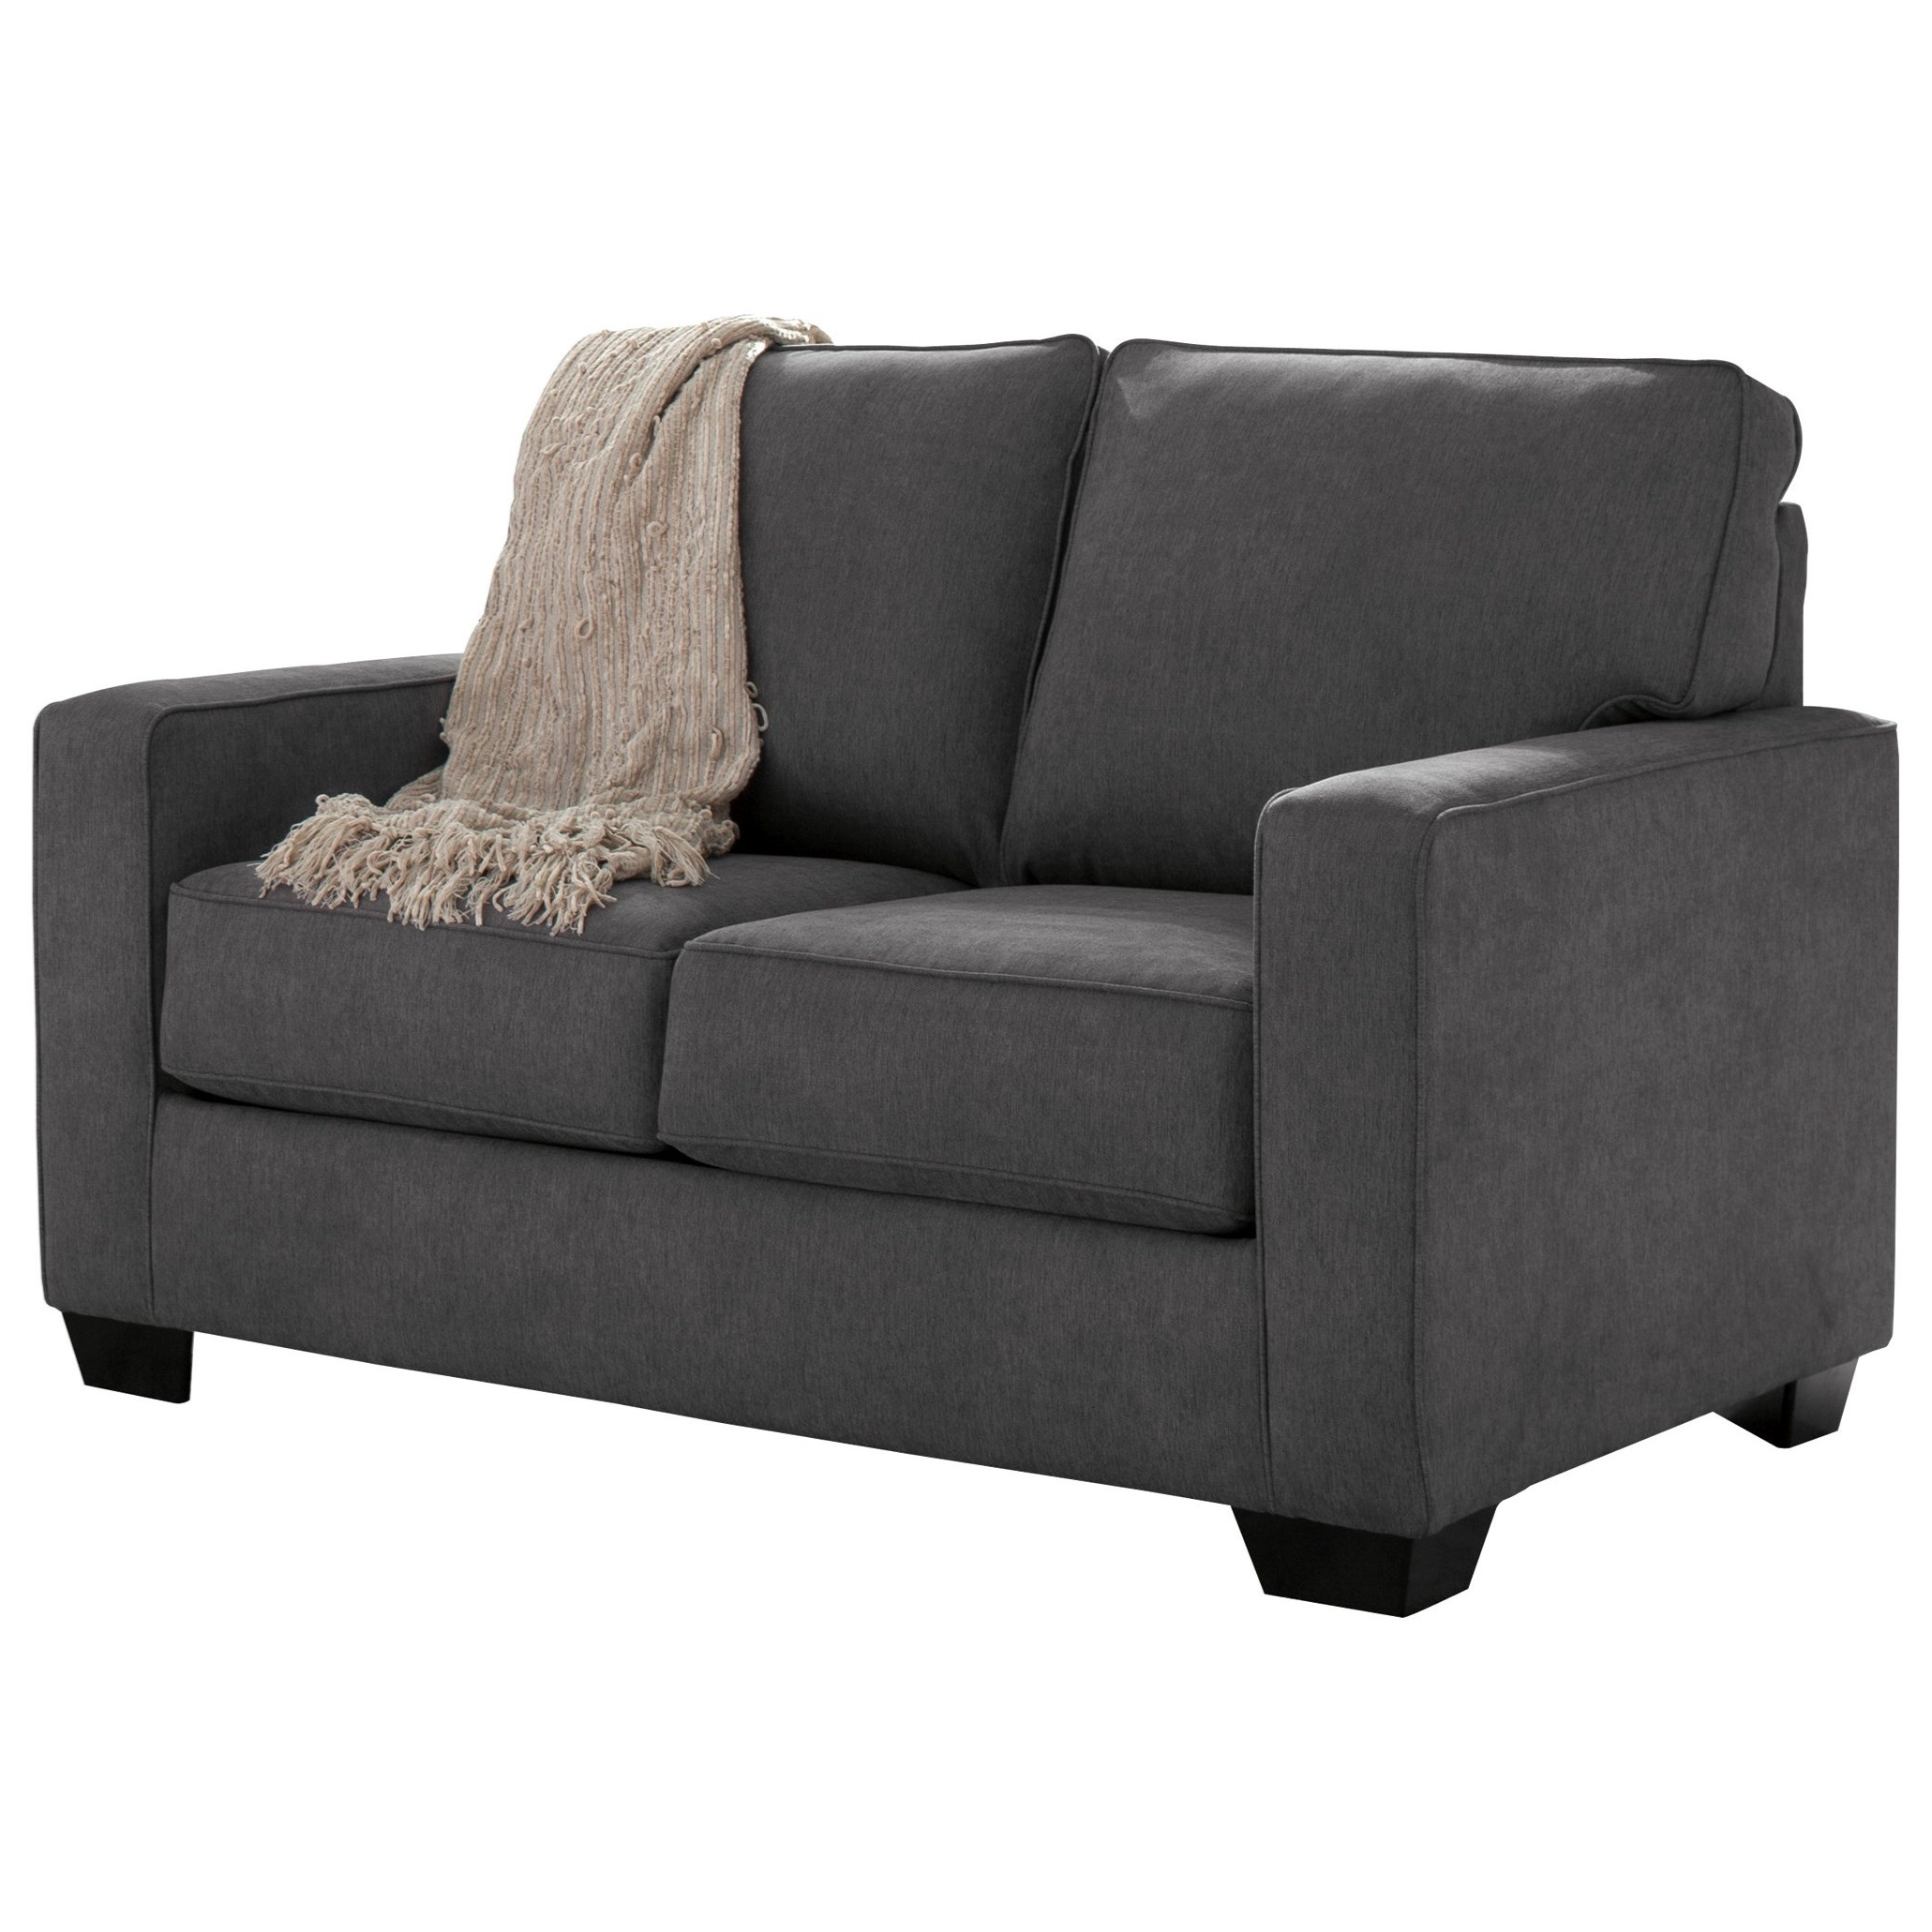 Signature Designashley Zeb 3590137 Twin Sofa Sleeper With With Current Twin Sleeper Sofa Chairs (View 12 of 20)